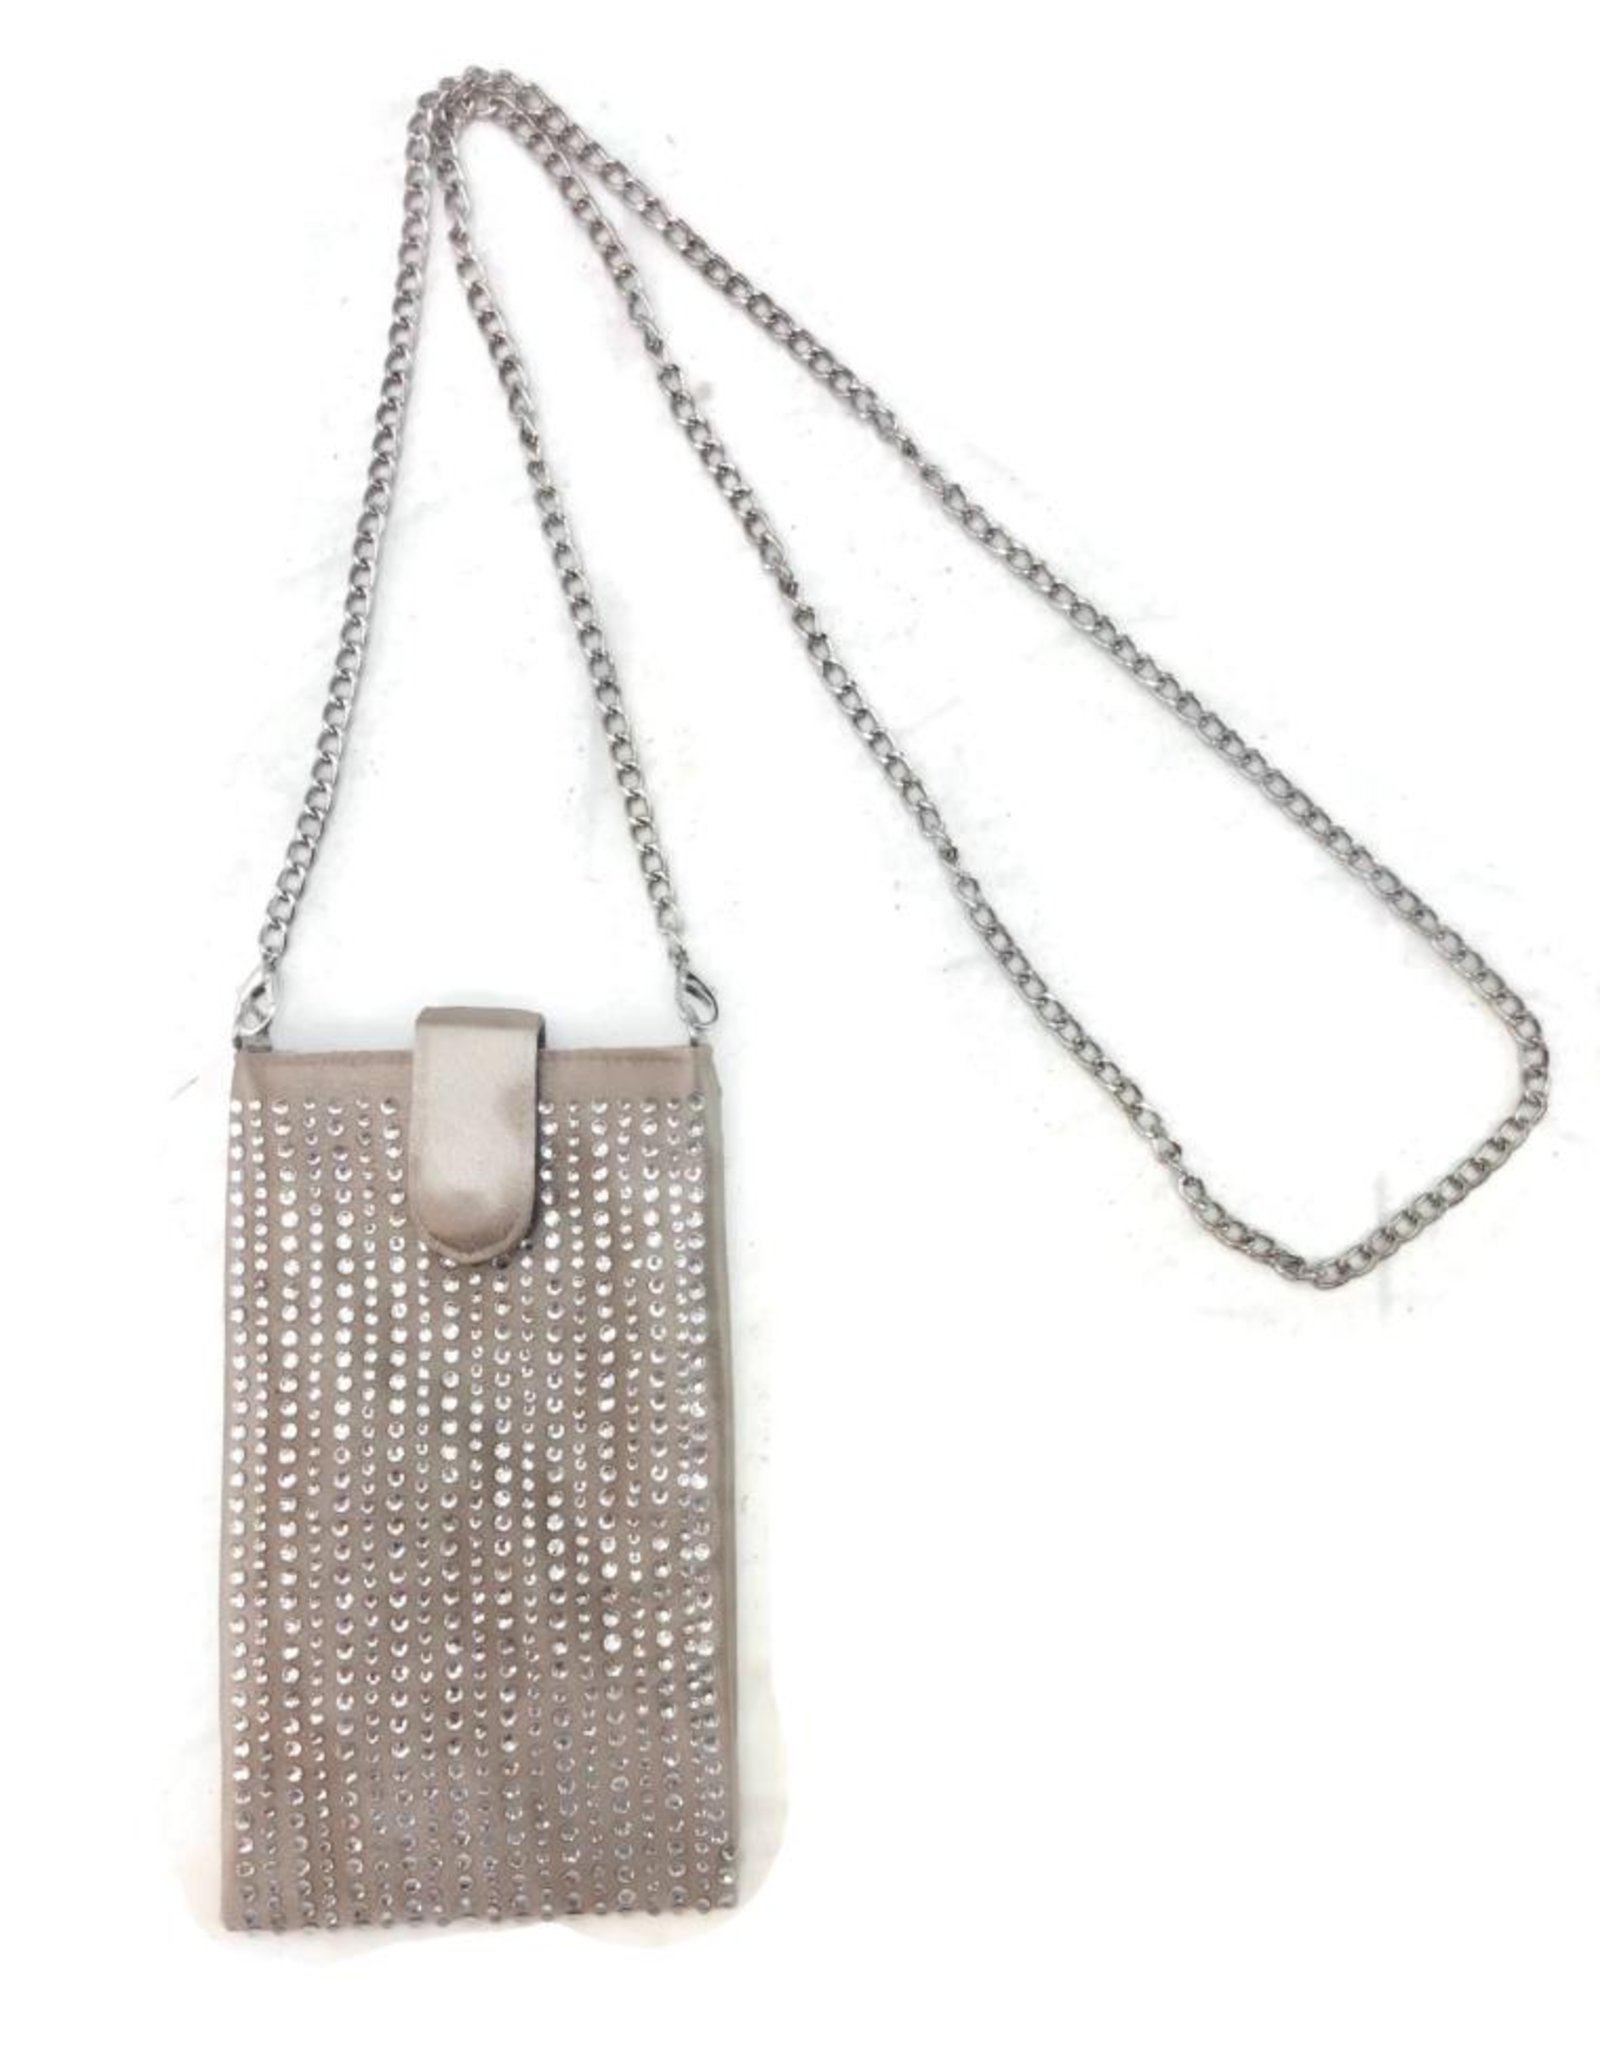 A Touch of Style Beige Rhinestone Phone Crossbody